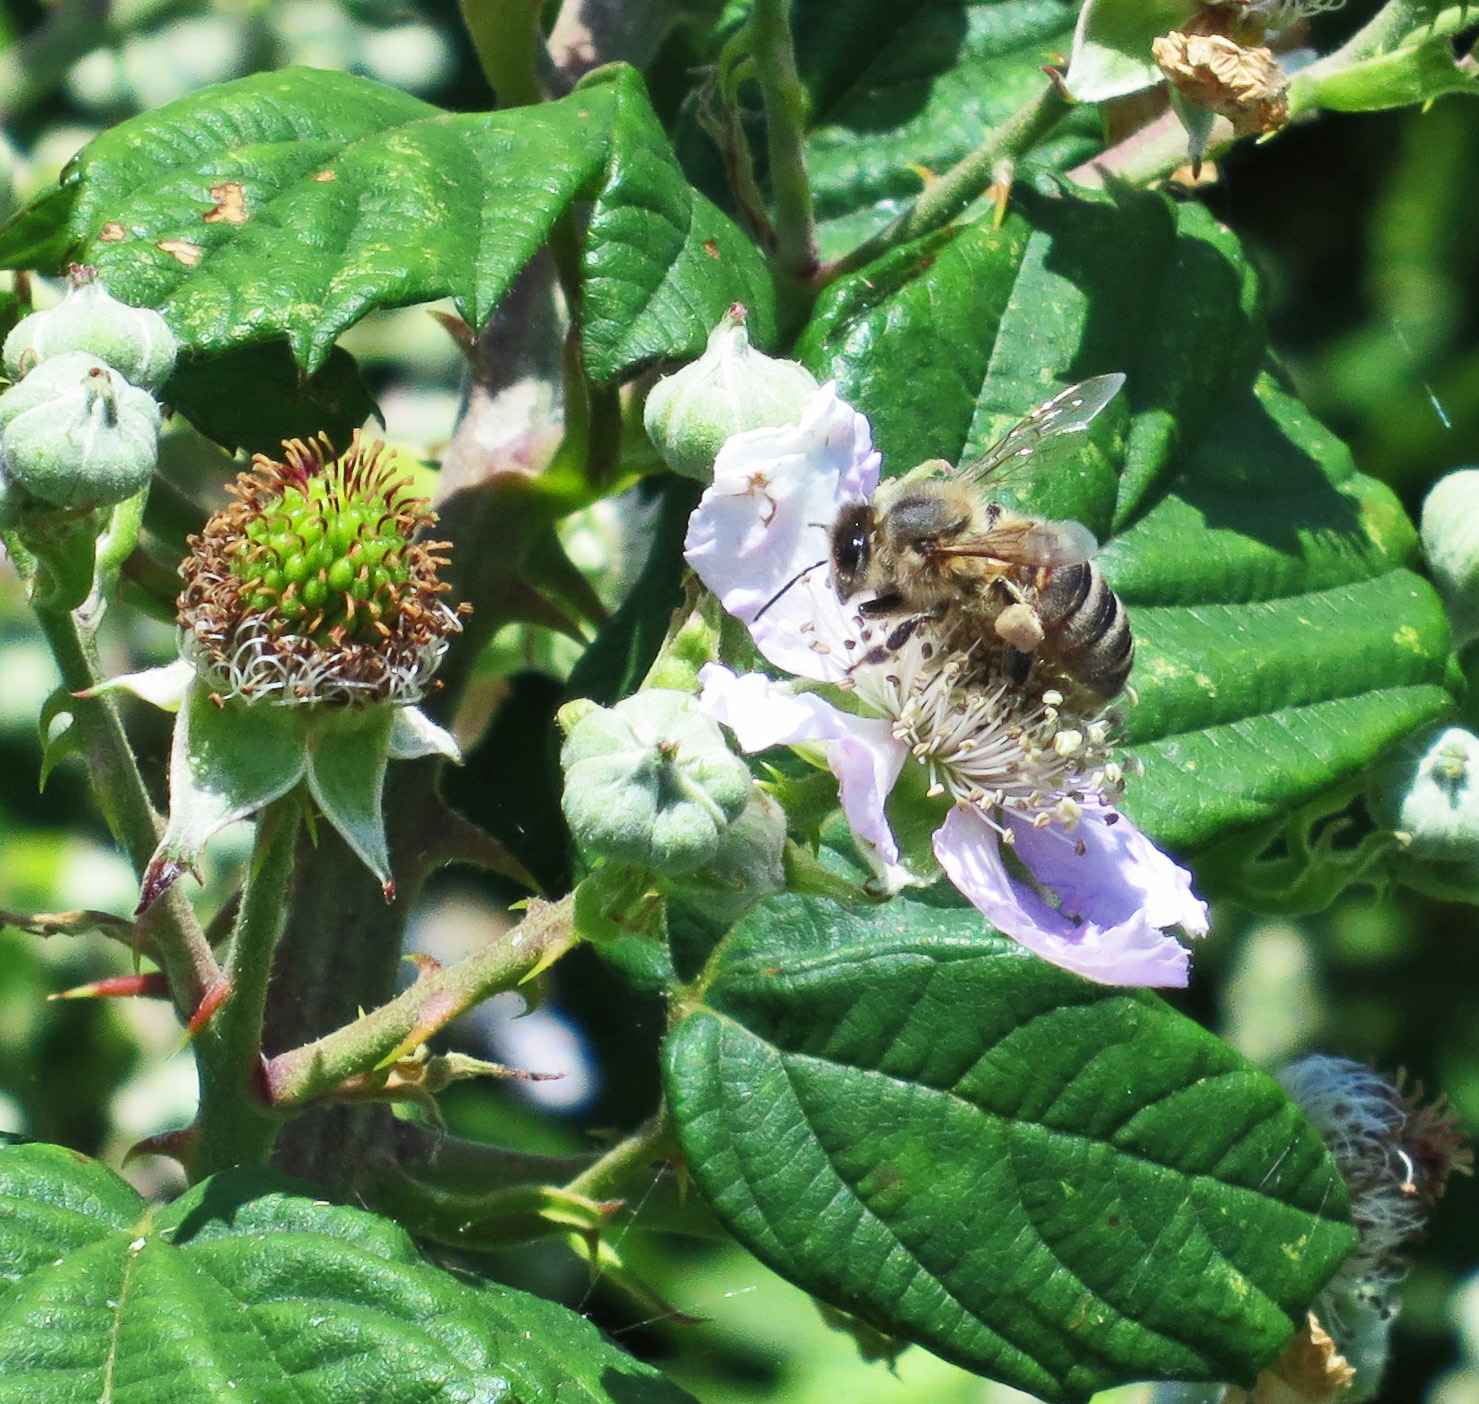 Honey Bee (Apis mellifera) June 25th 2014 on bramble flower - with blackberry forming